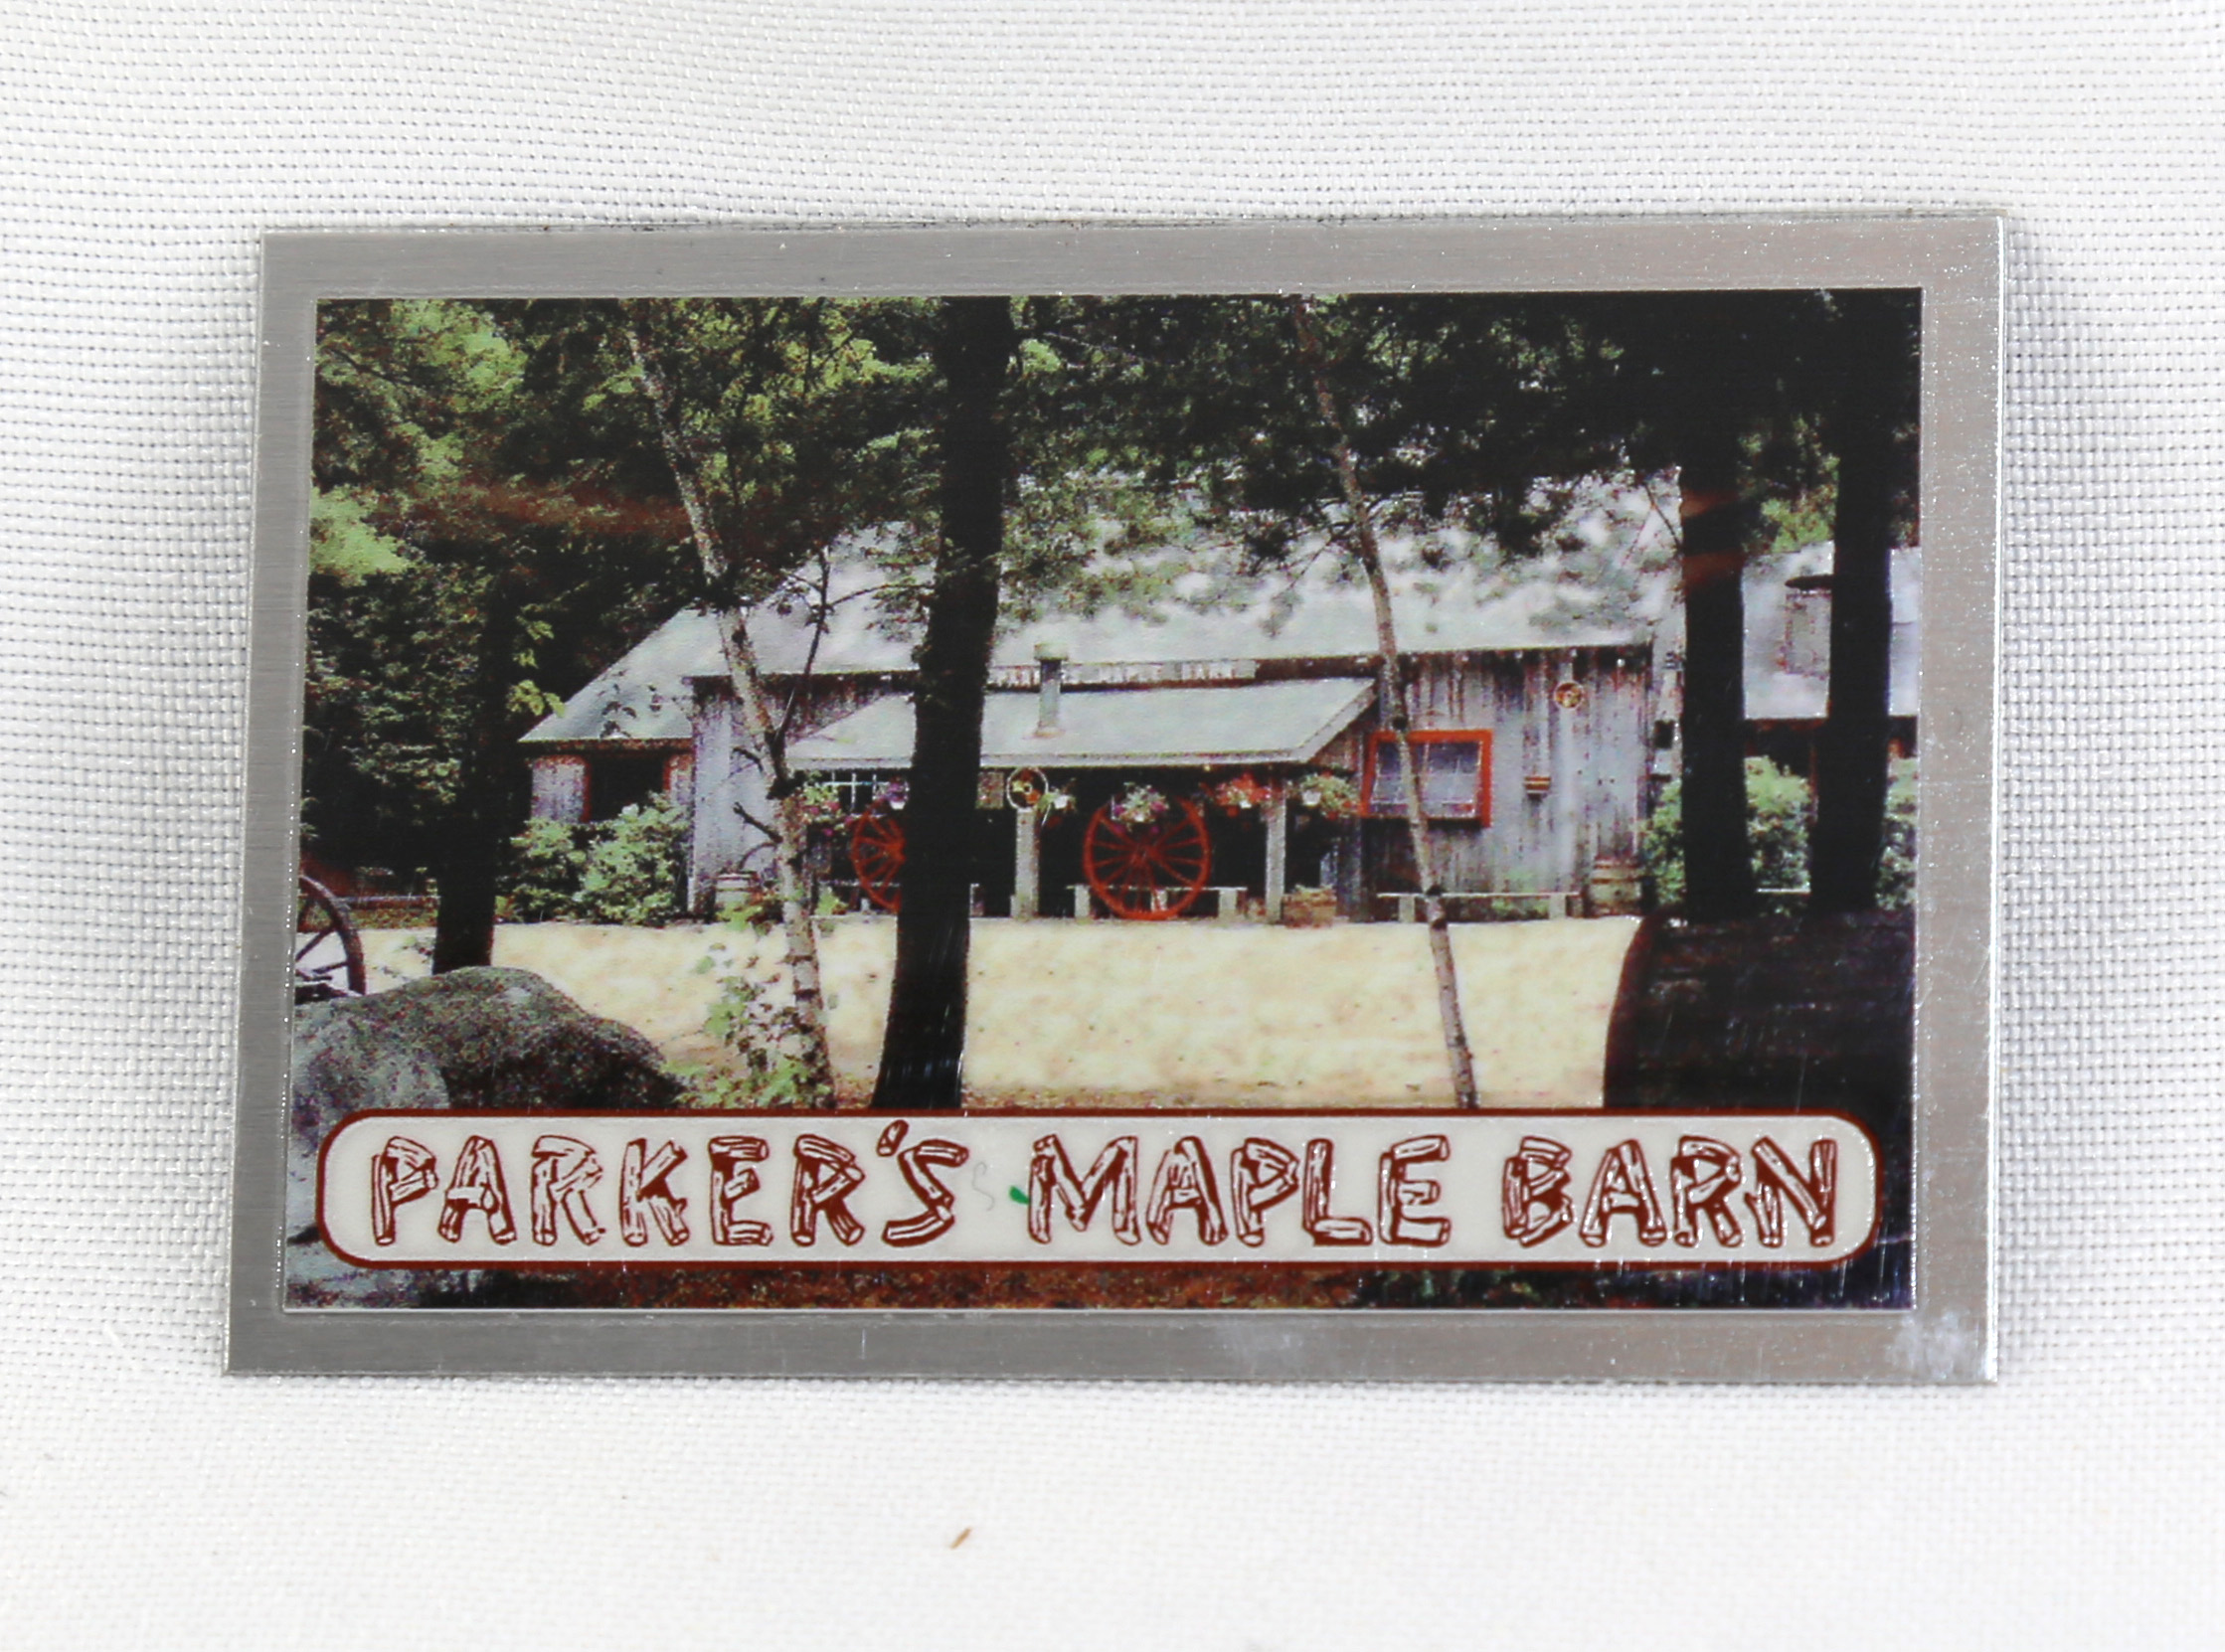 Parkers Maple Barn Restaurant Magnet